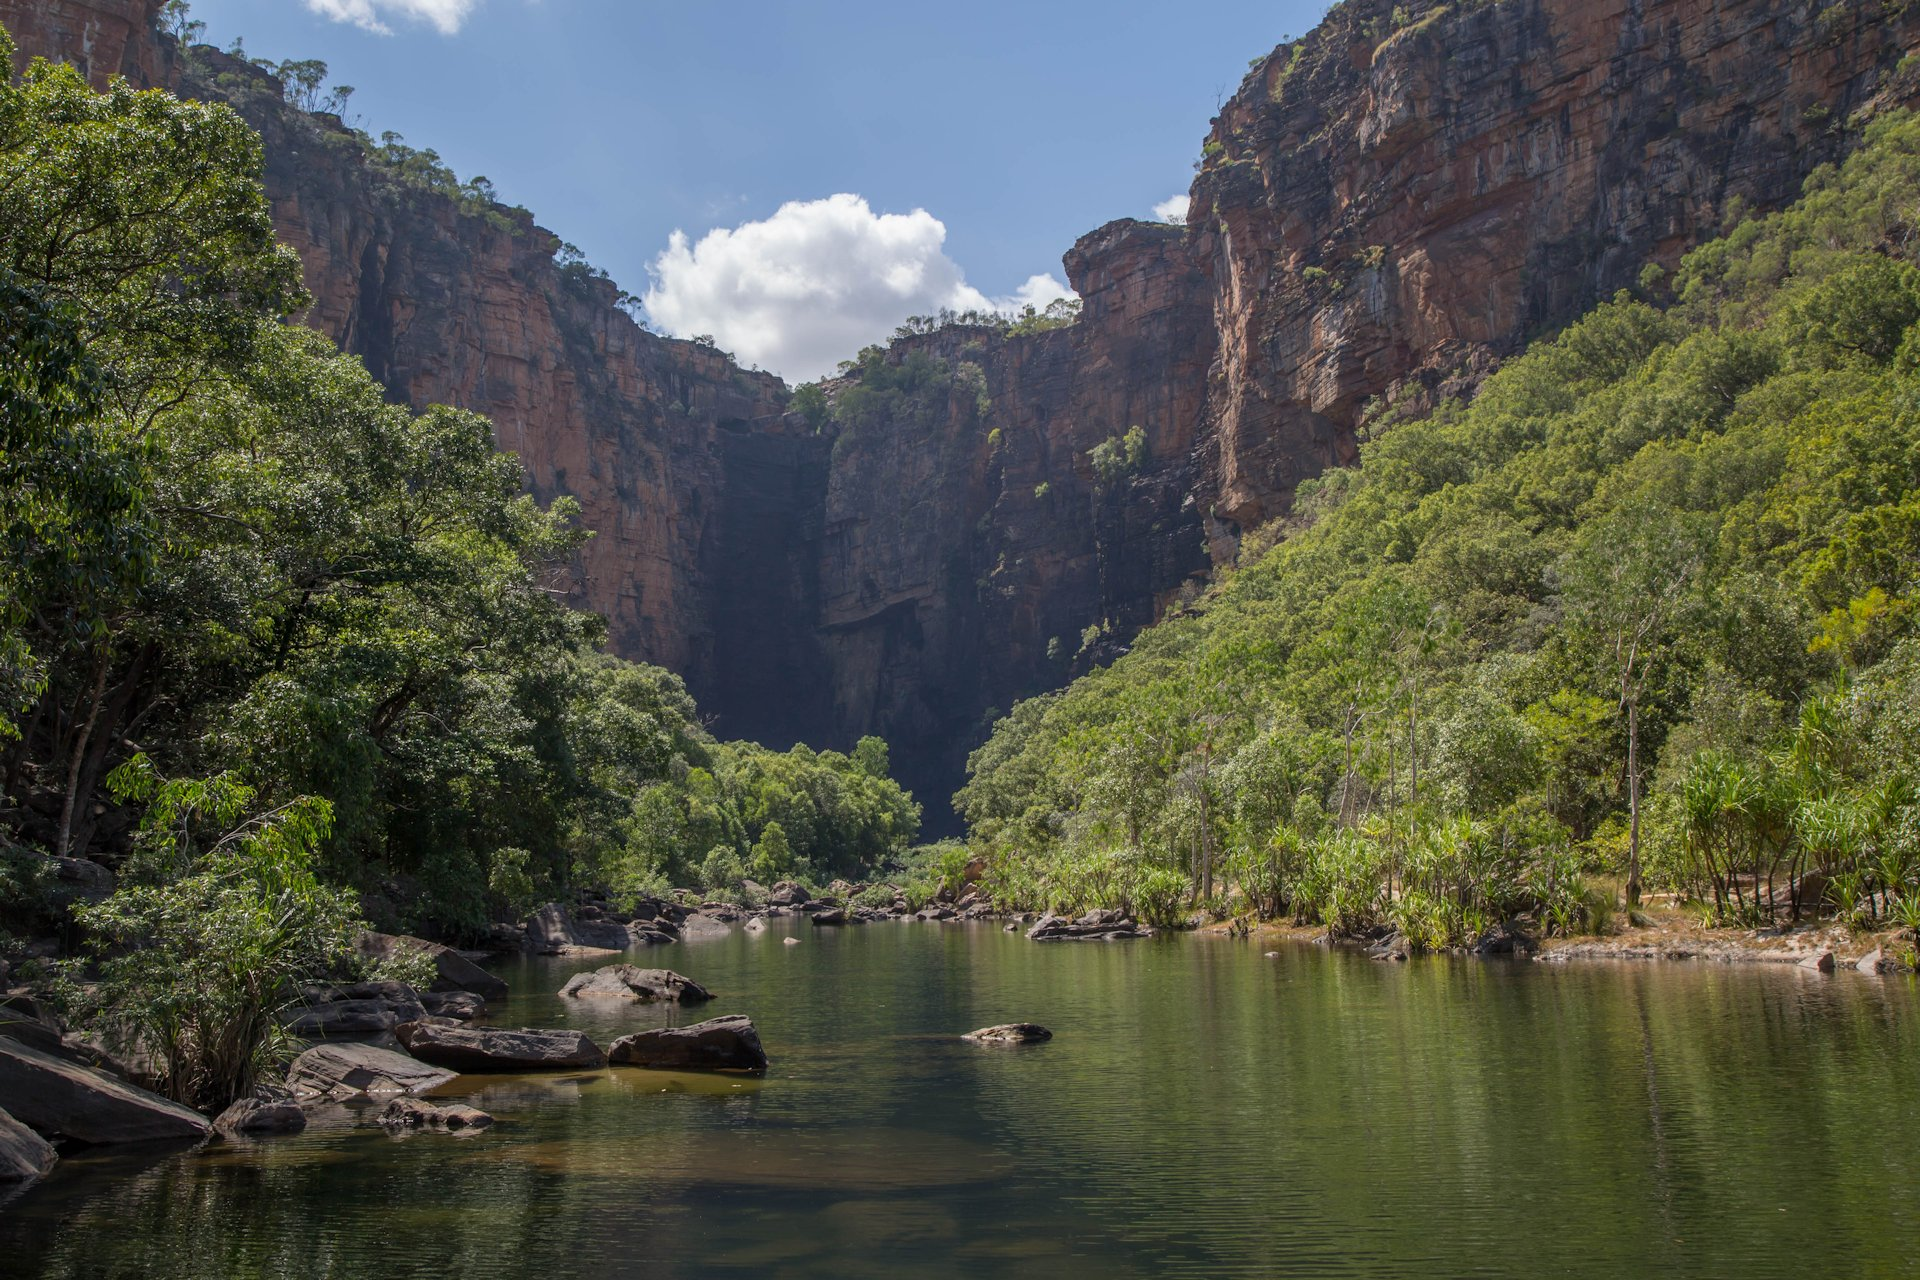 View of the (dry) Jim Jim Falls and the rock walls of the Arnhem Plateau, Kakadu NP